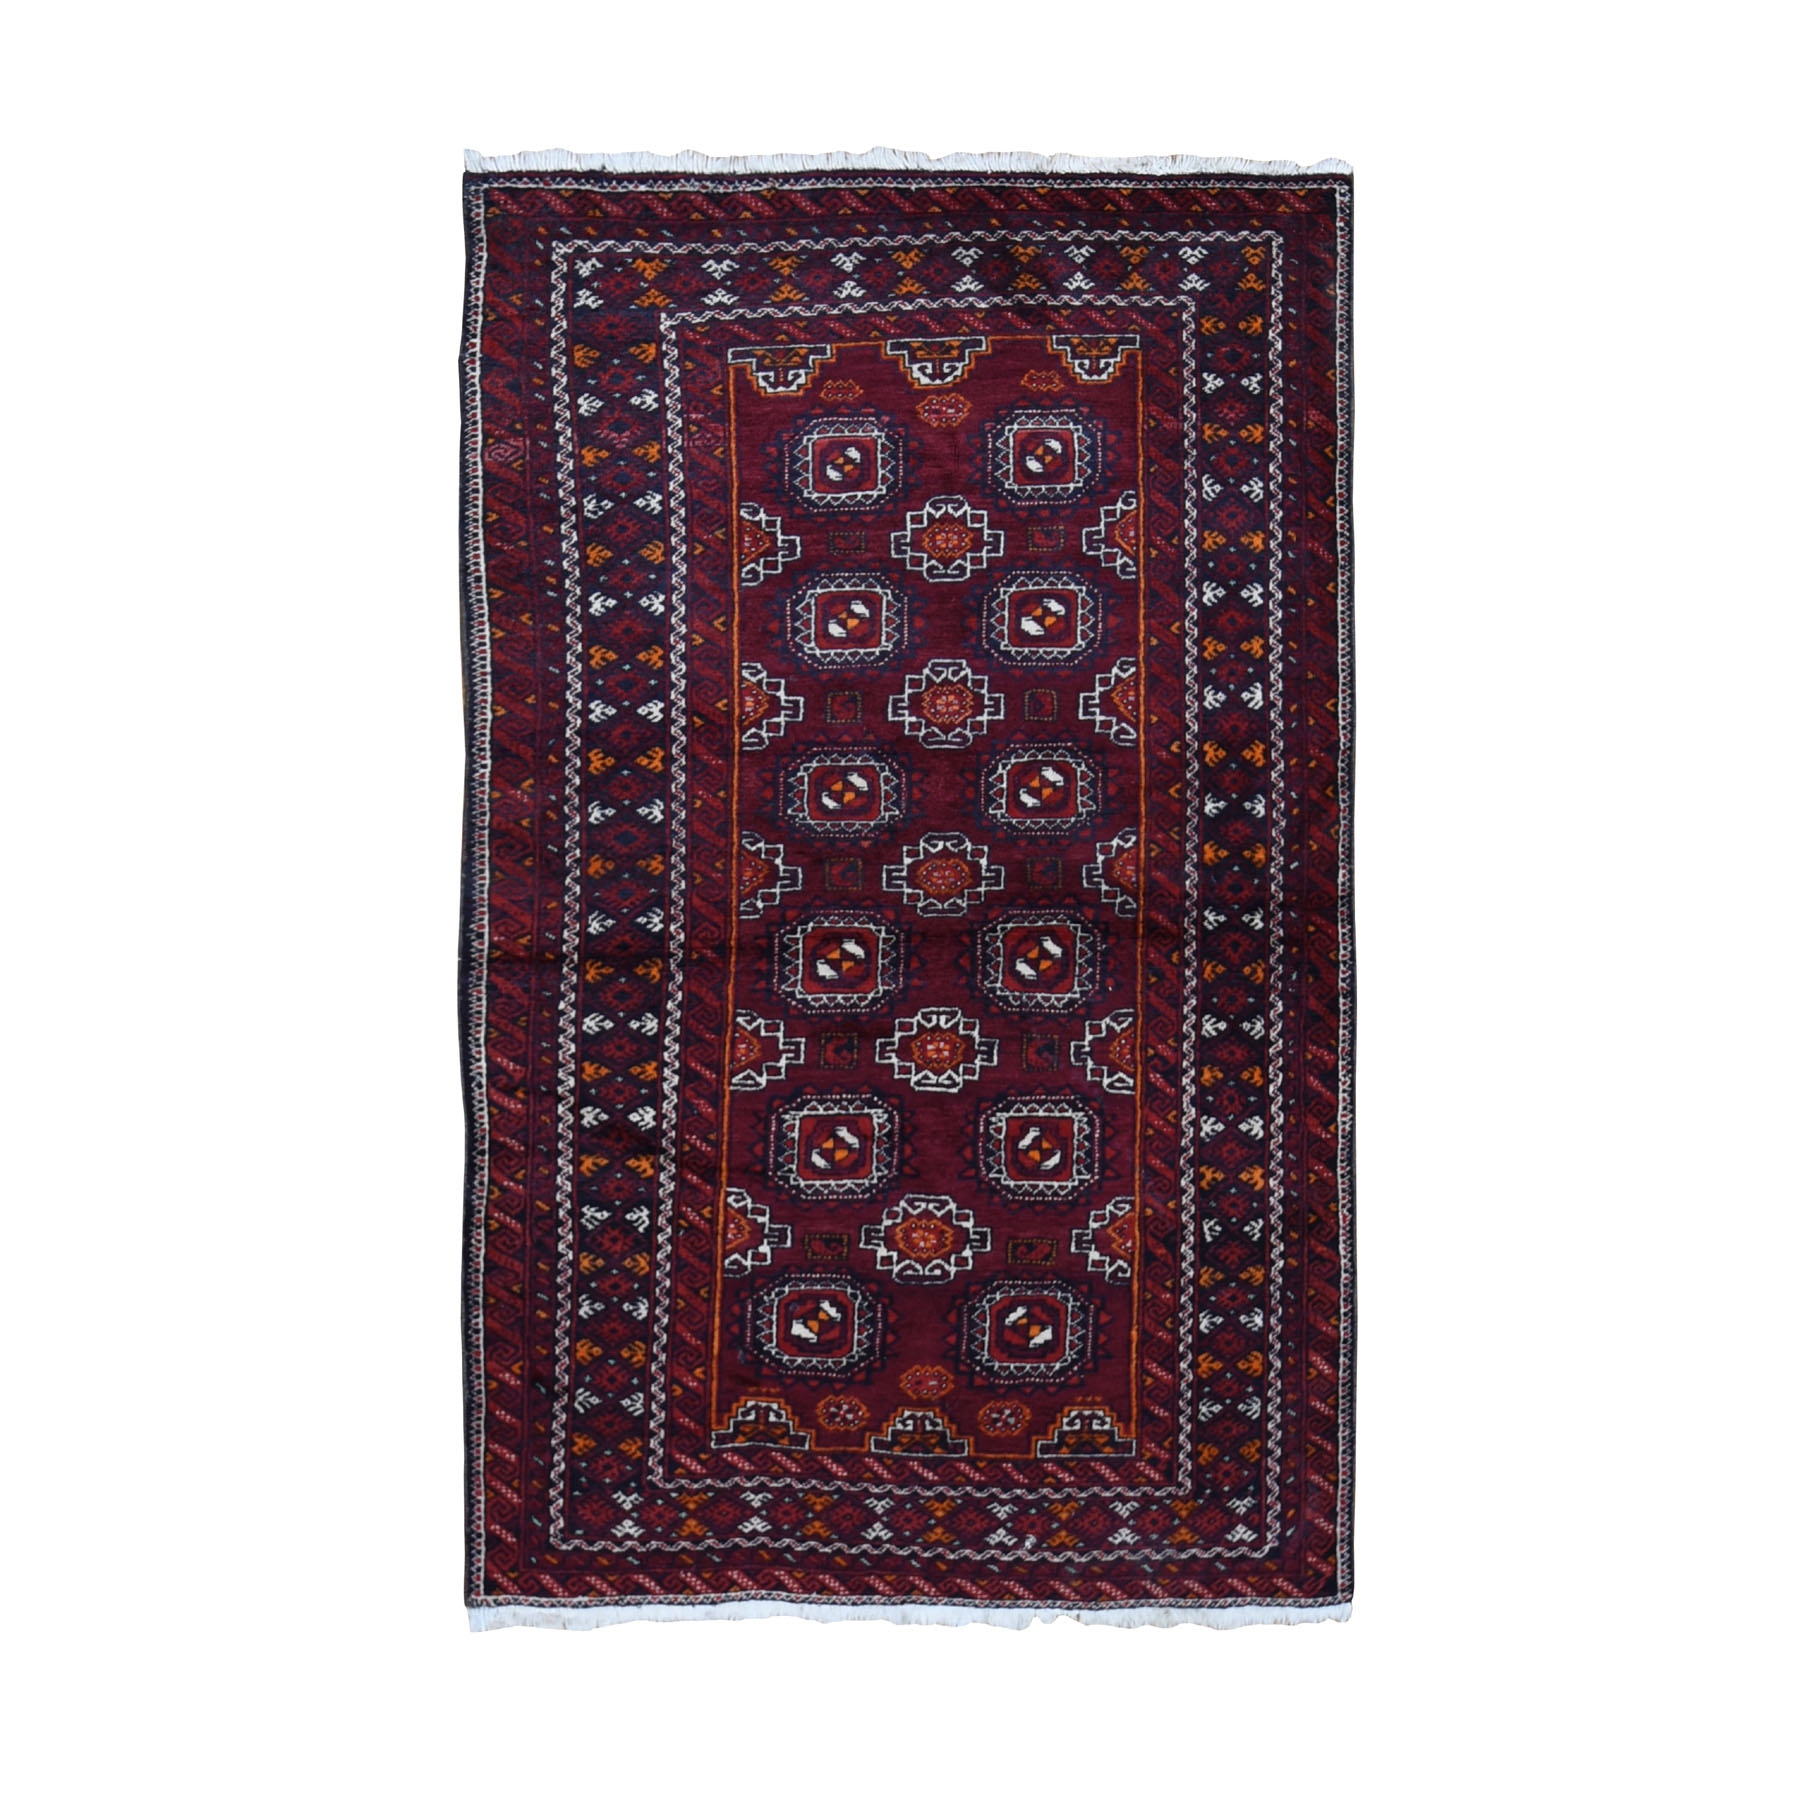 "3'4""x5'10"" Red Vintage Turkoman Gul Motif Pure Wool Hand Knotted Oriental Rug"